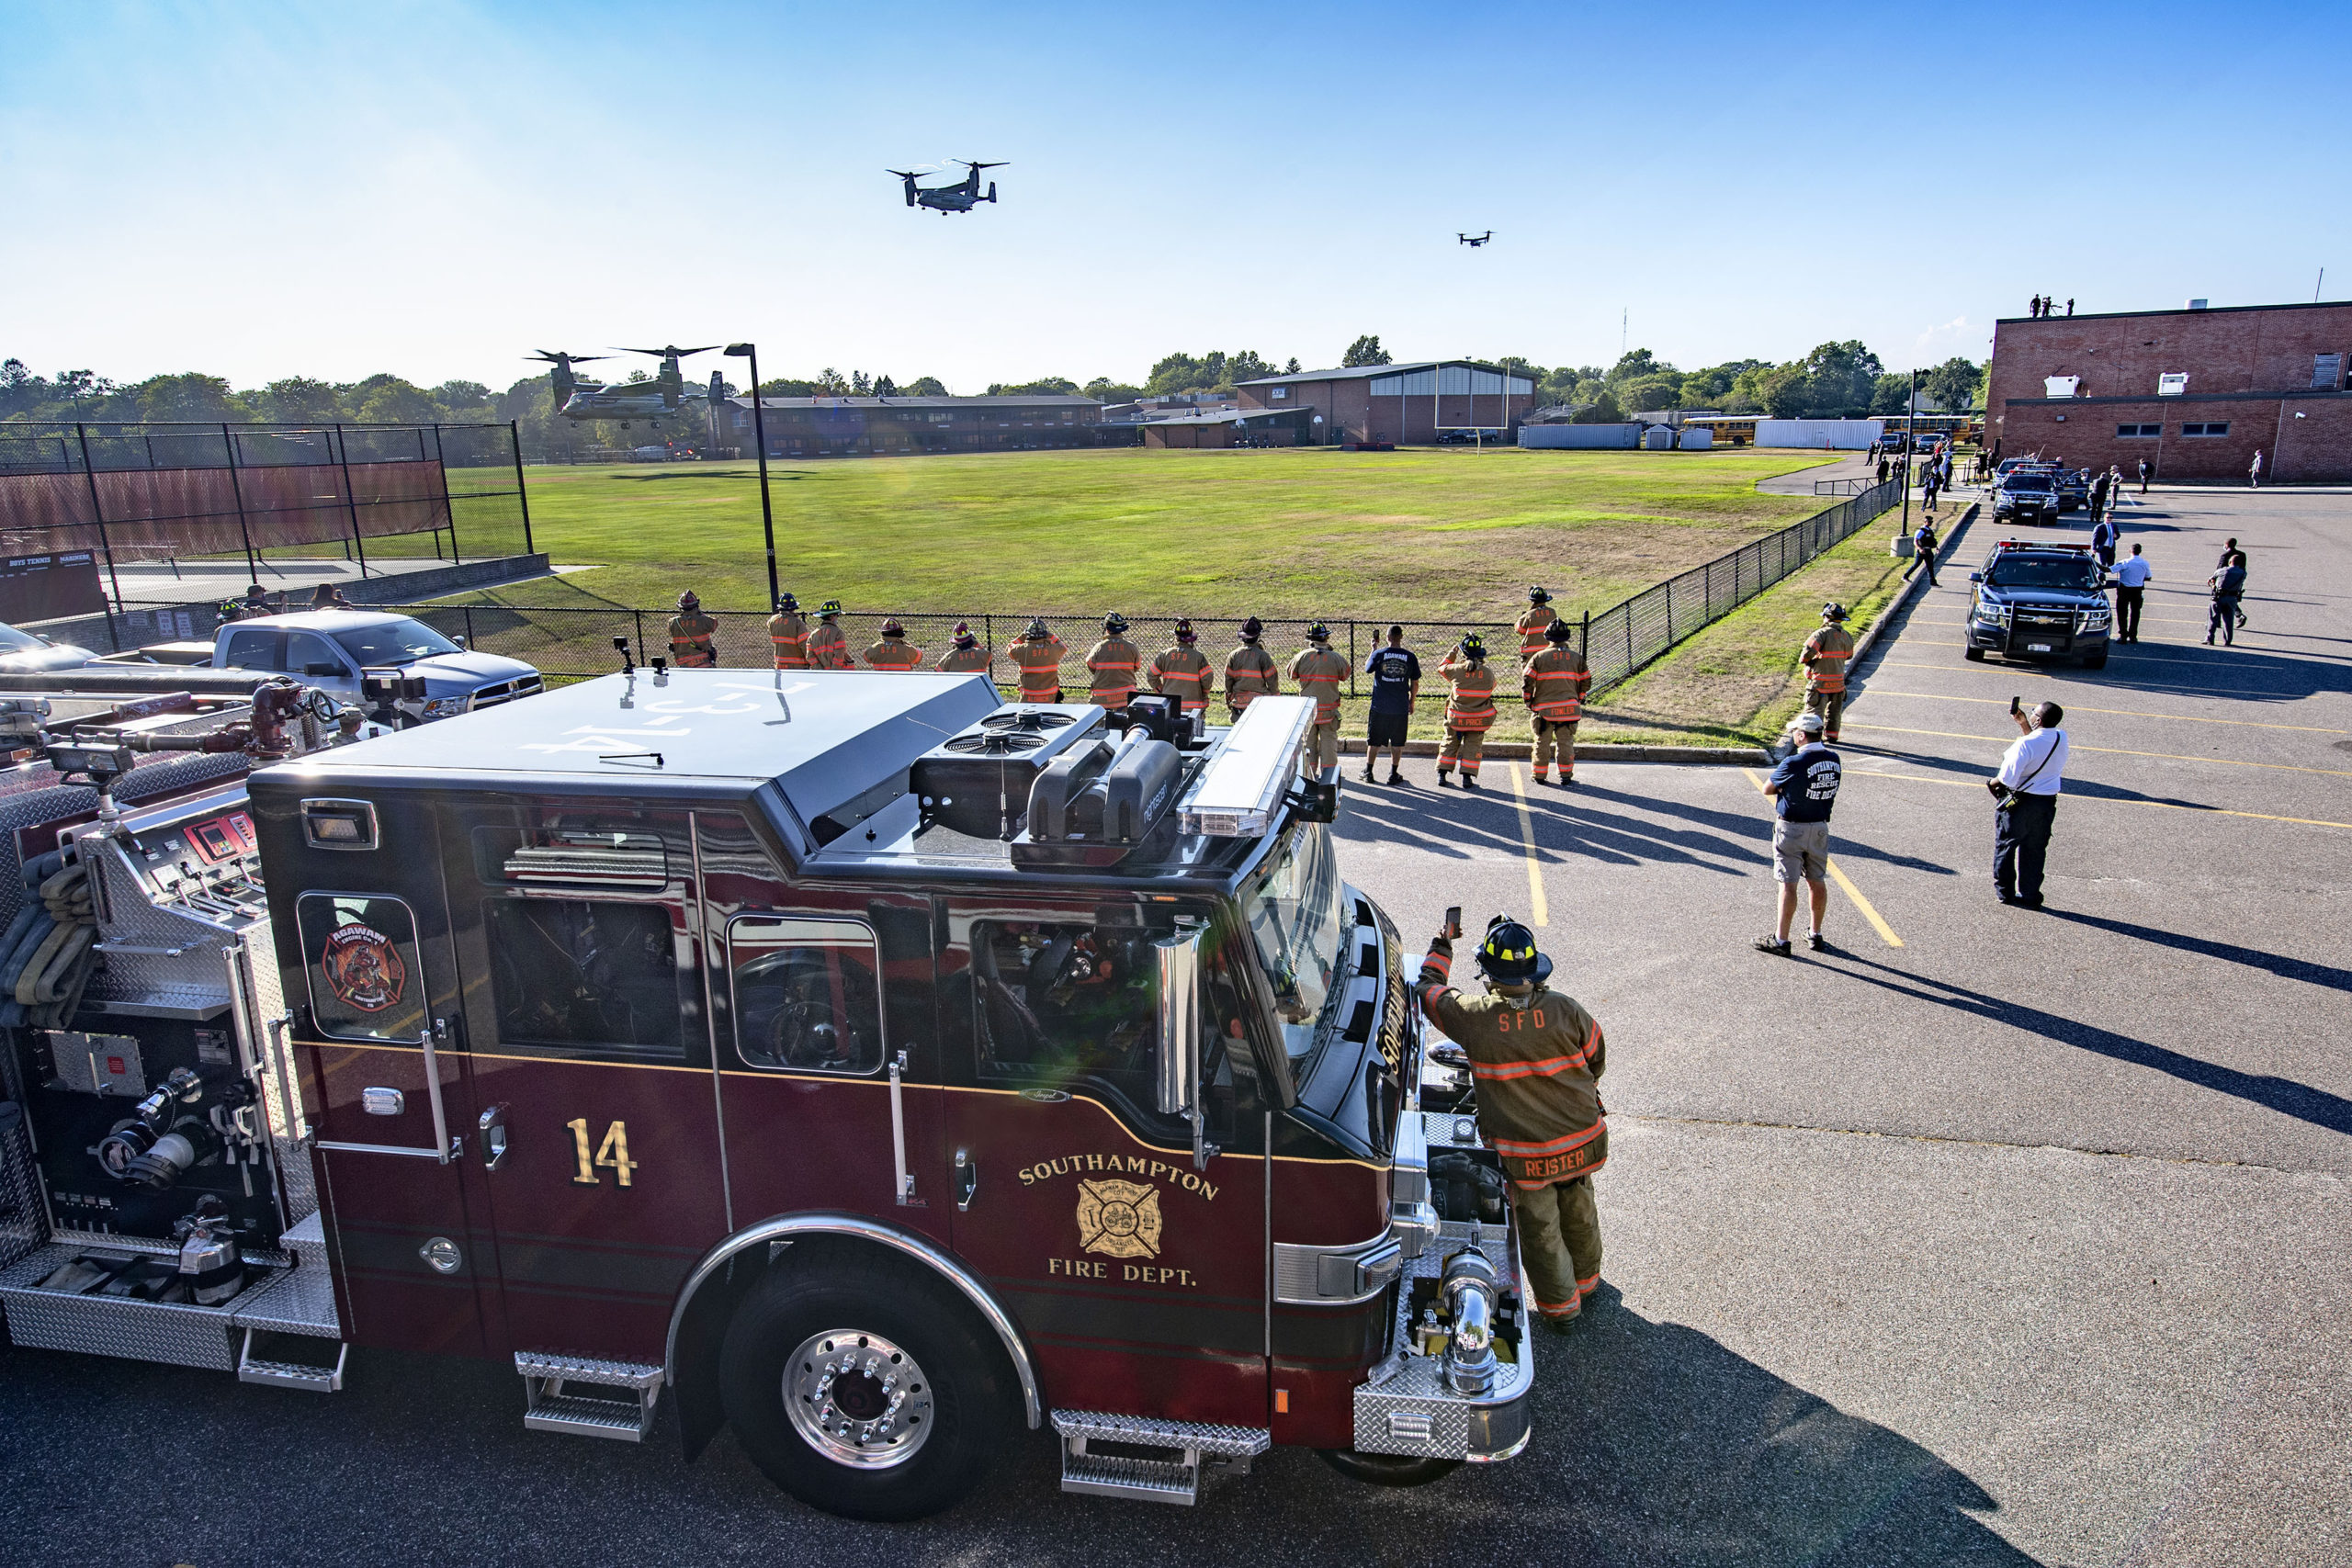 Members of the Southampton Fire Department look on as Marine Osprey aircraft carrying presidential staff come in for a landing at the athletic fields behind Southampton High School during President Trump's visit to the Hamptons on Saturday.    MICHAEL HELLER